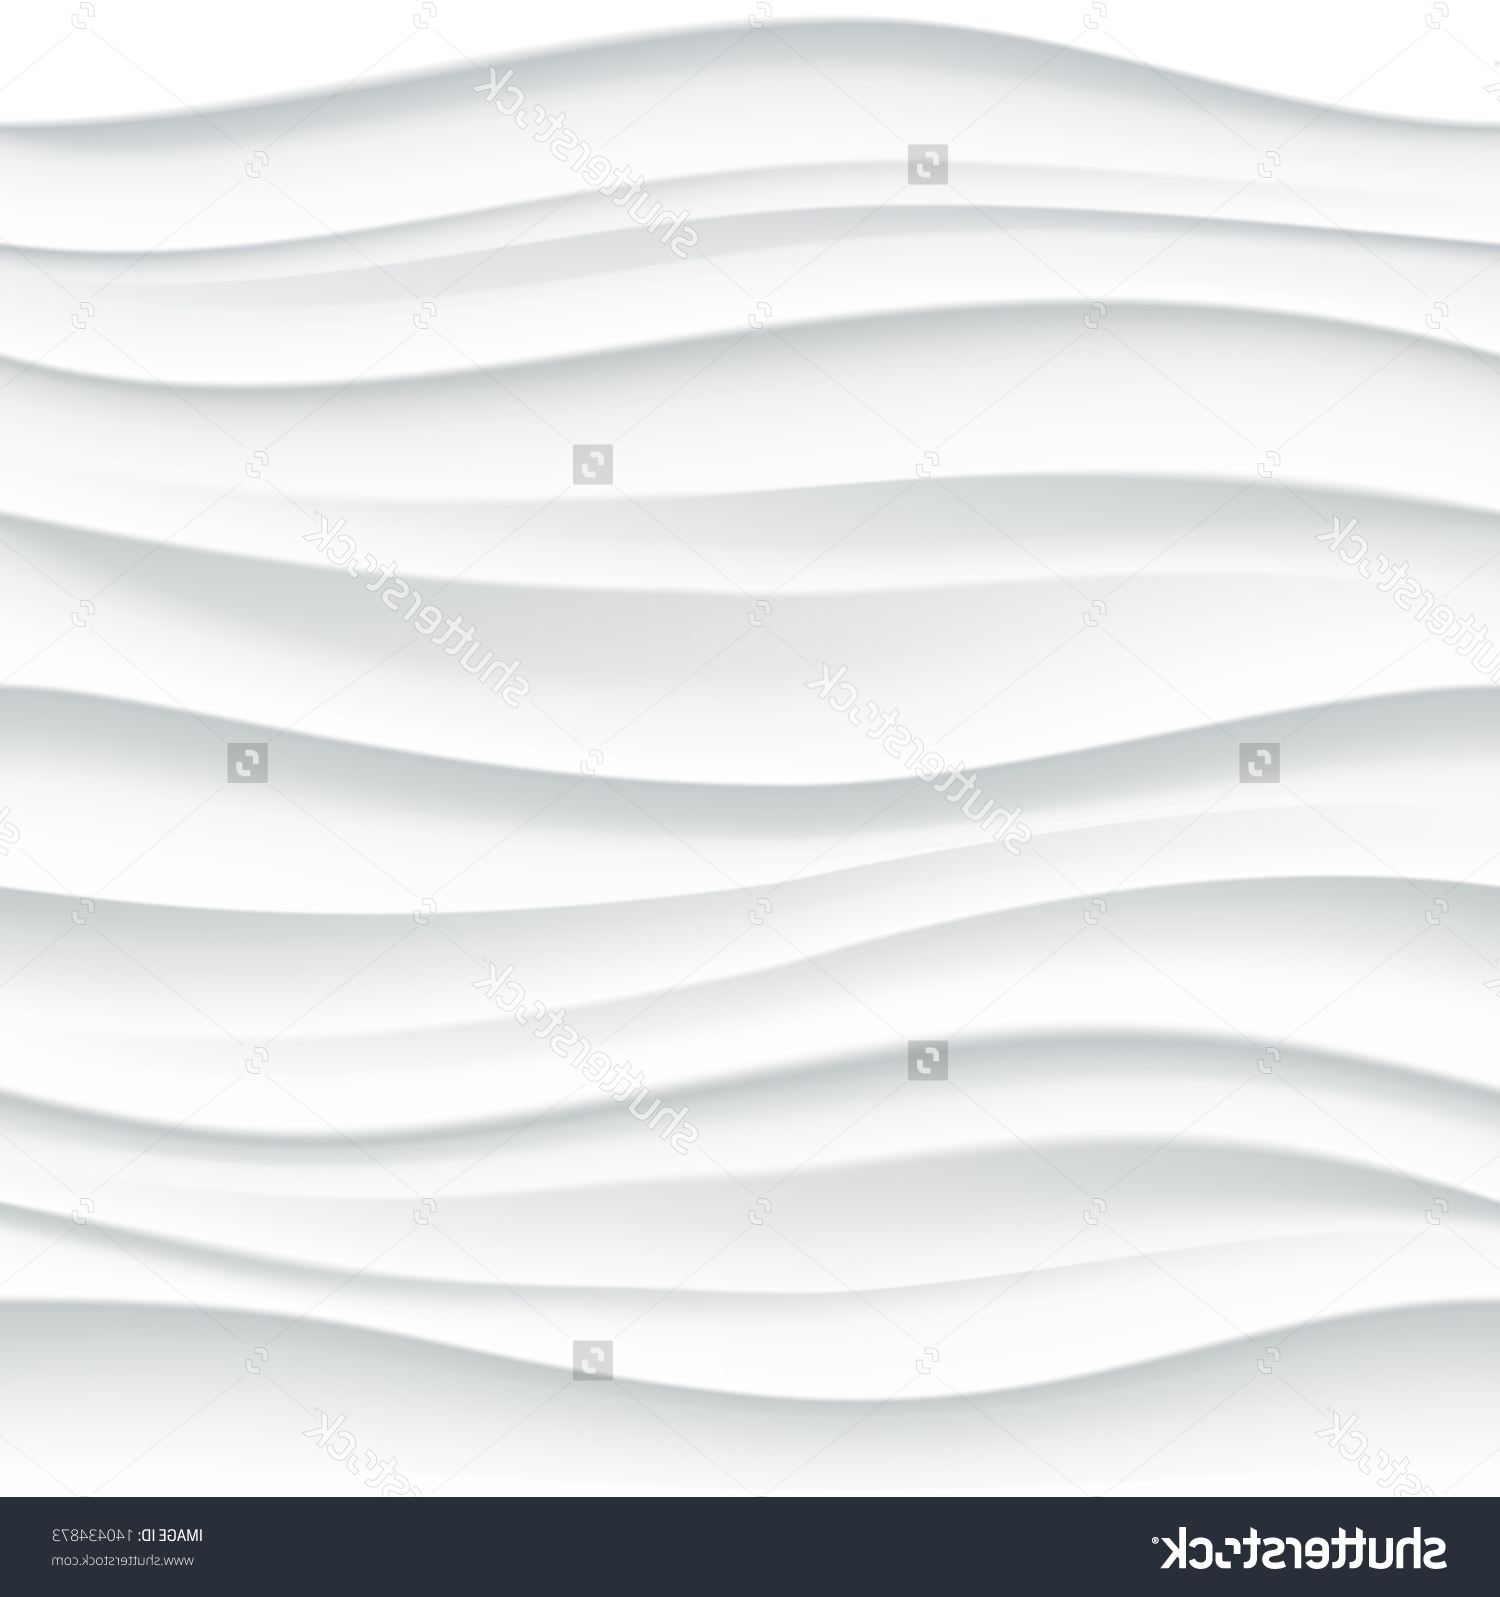 Waves 3D Wall Art Intended For Well Known Seamless Plaster Wall Stucco Paint Texture Jpg Learn More At Bp (View 14 of 15)